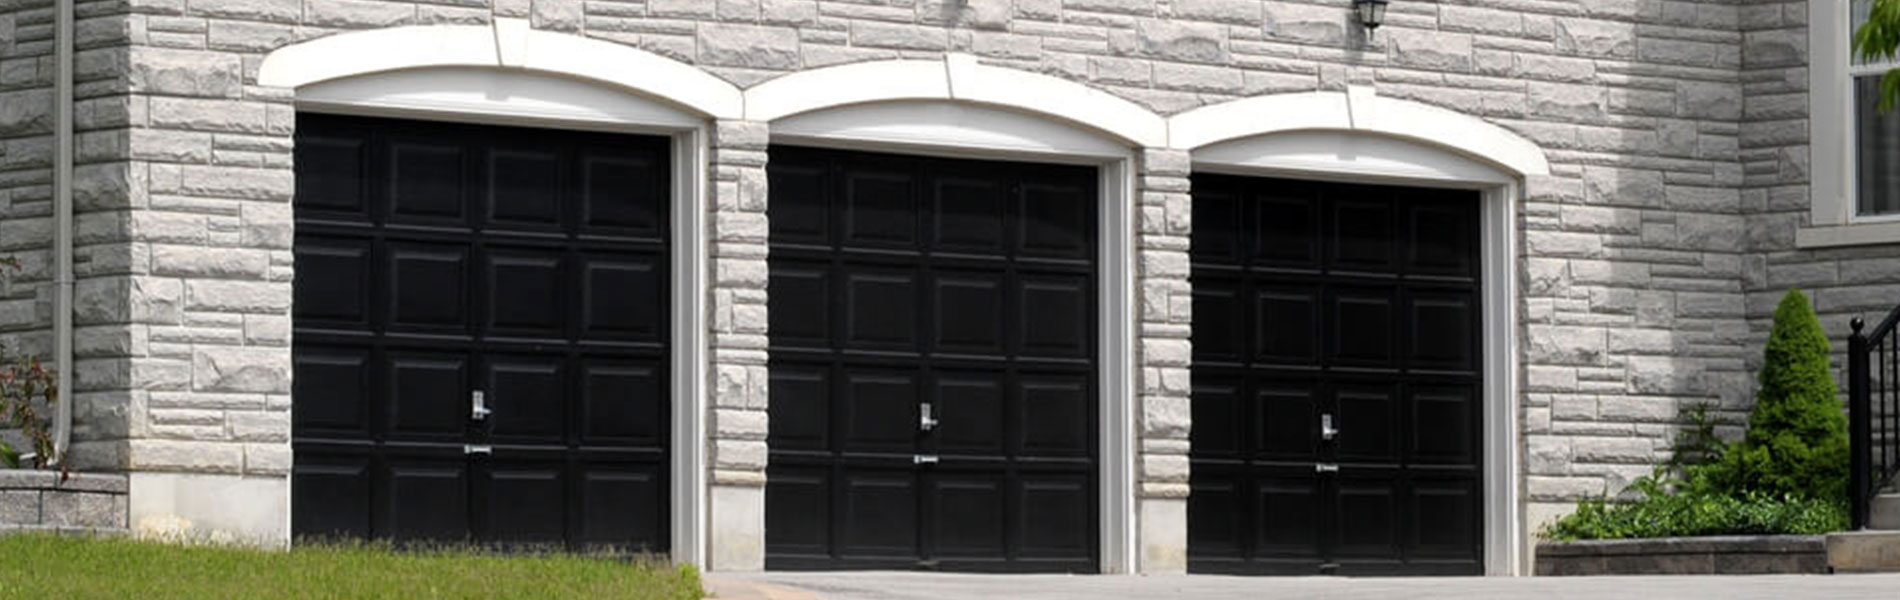 Neighborhood Garage Door Service, Lindenhurst, NY 631-776-6007